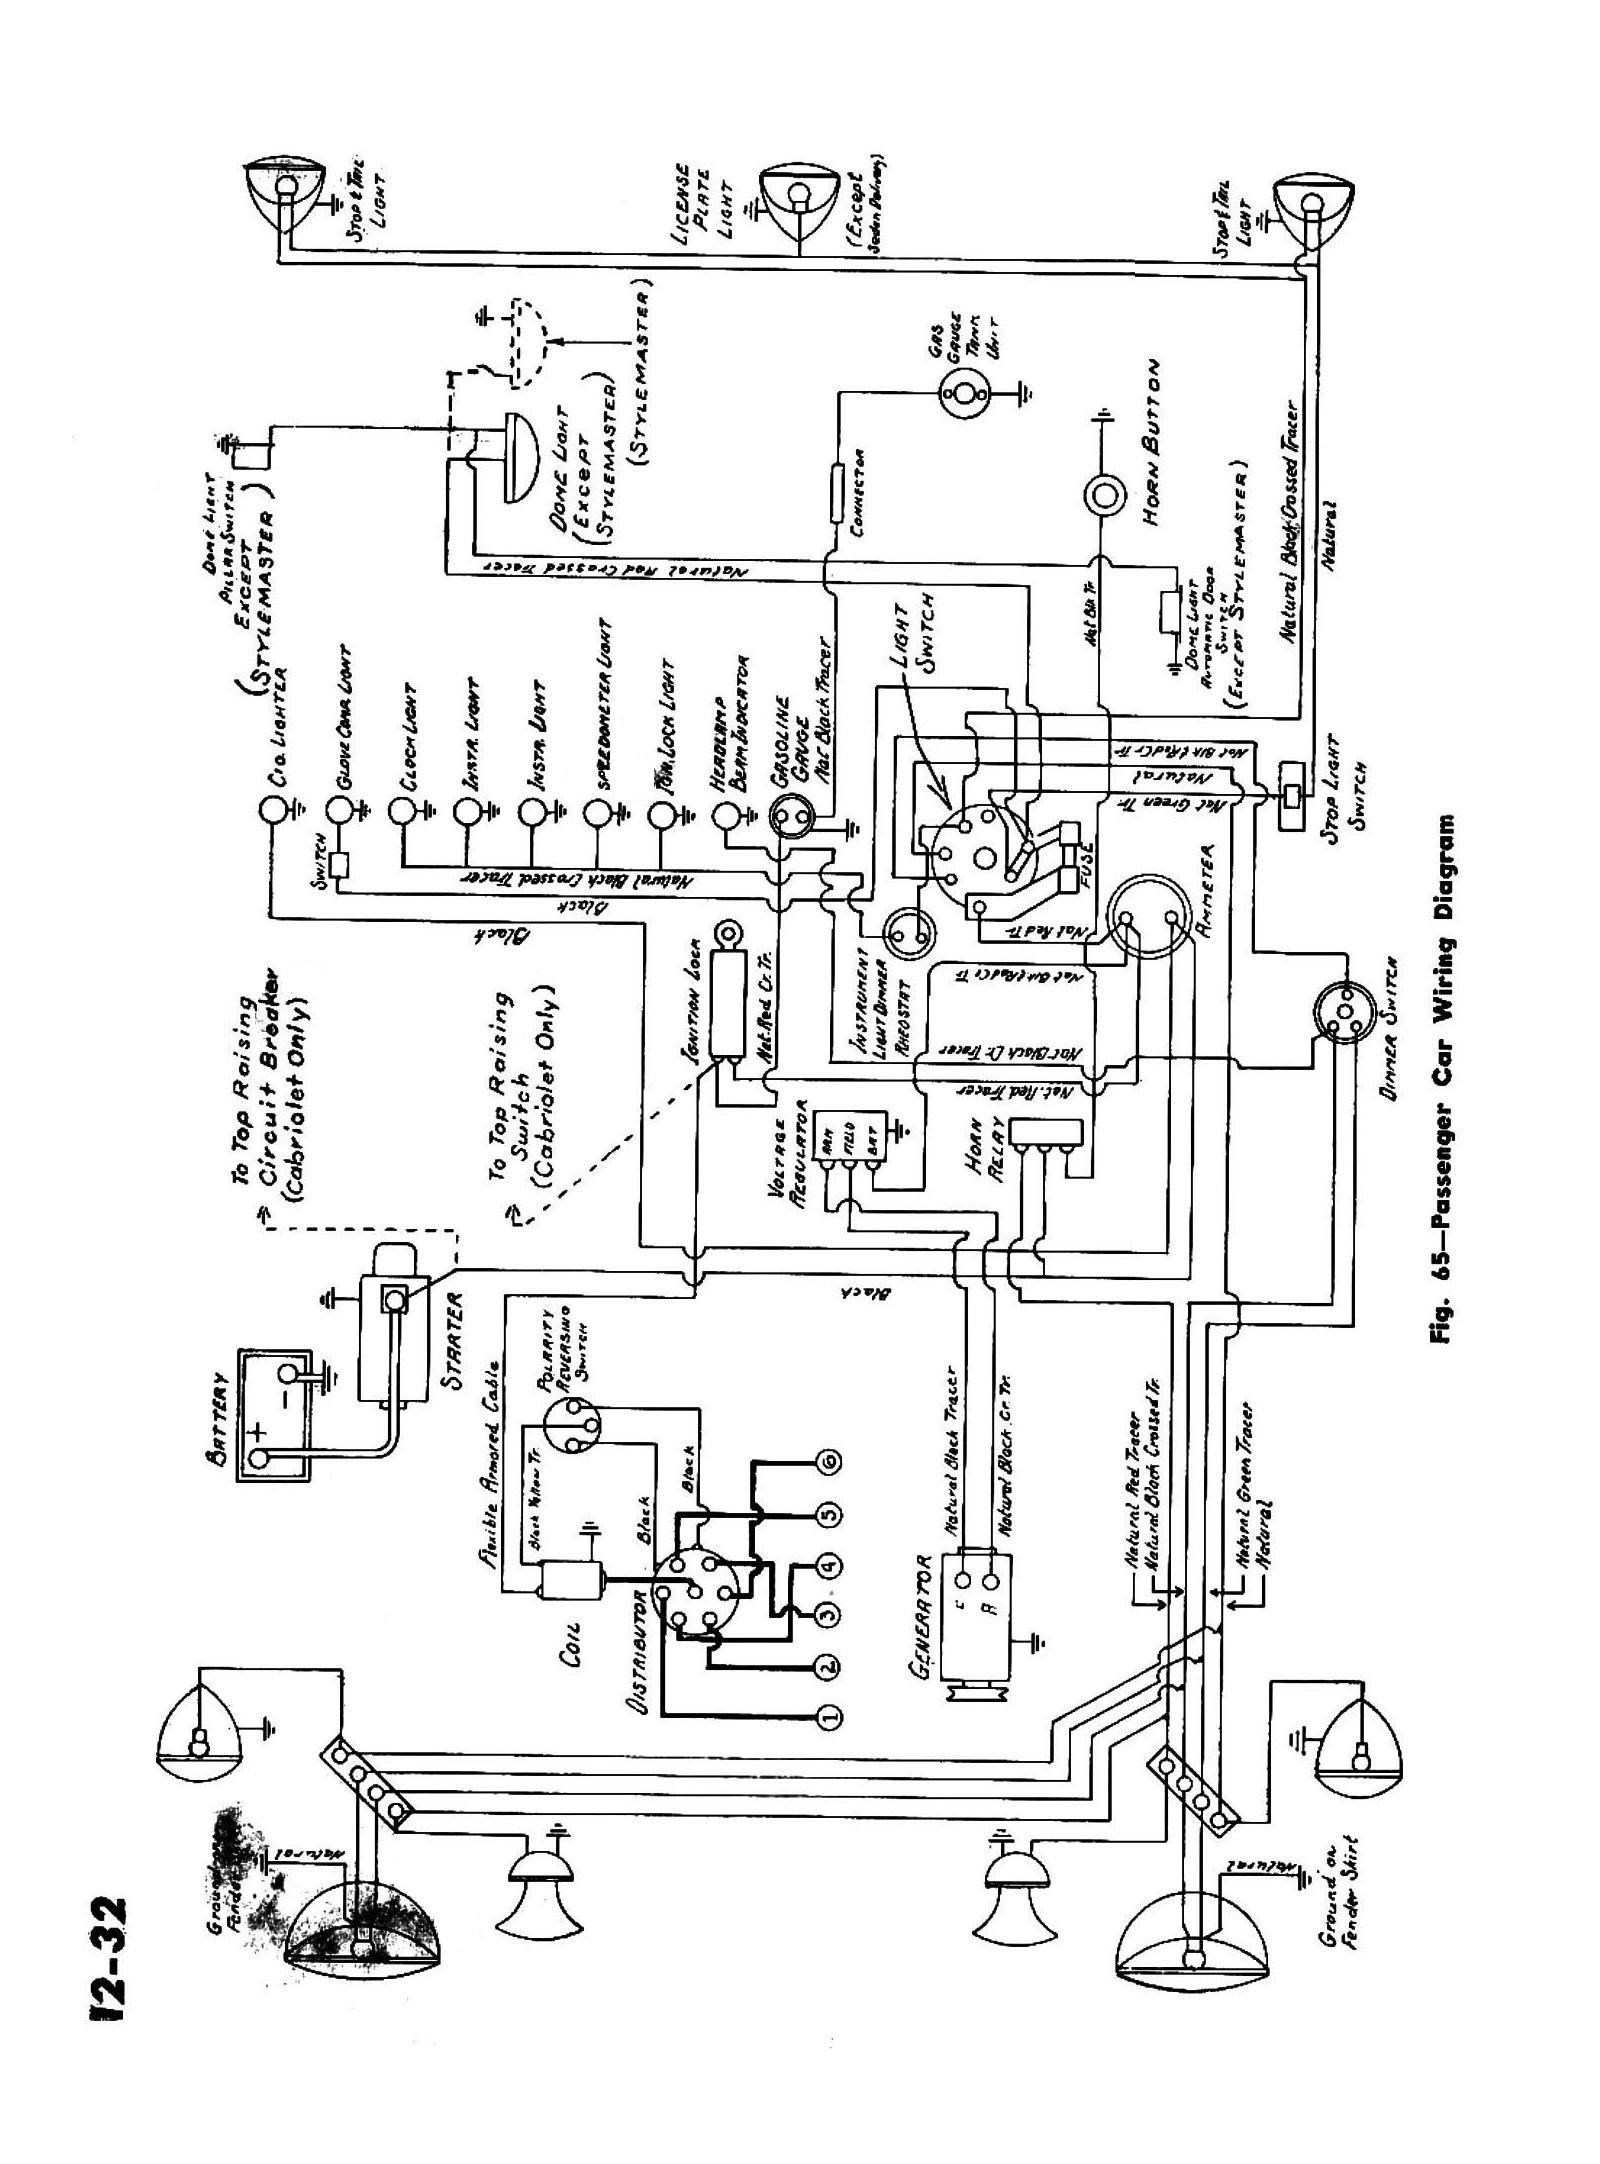 How To Read Electrical Circuit Diagram Pdf Industrial Electrical - Wiring circuit diagrams pdf